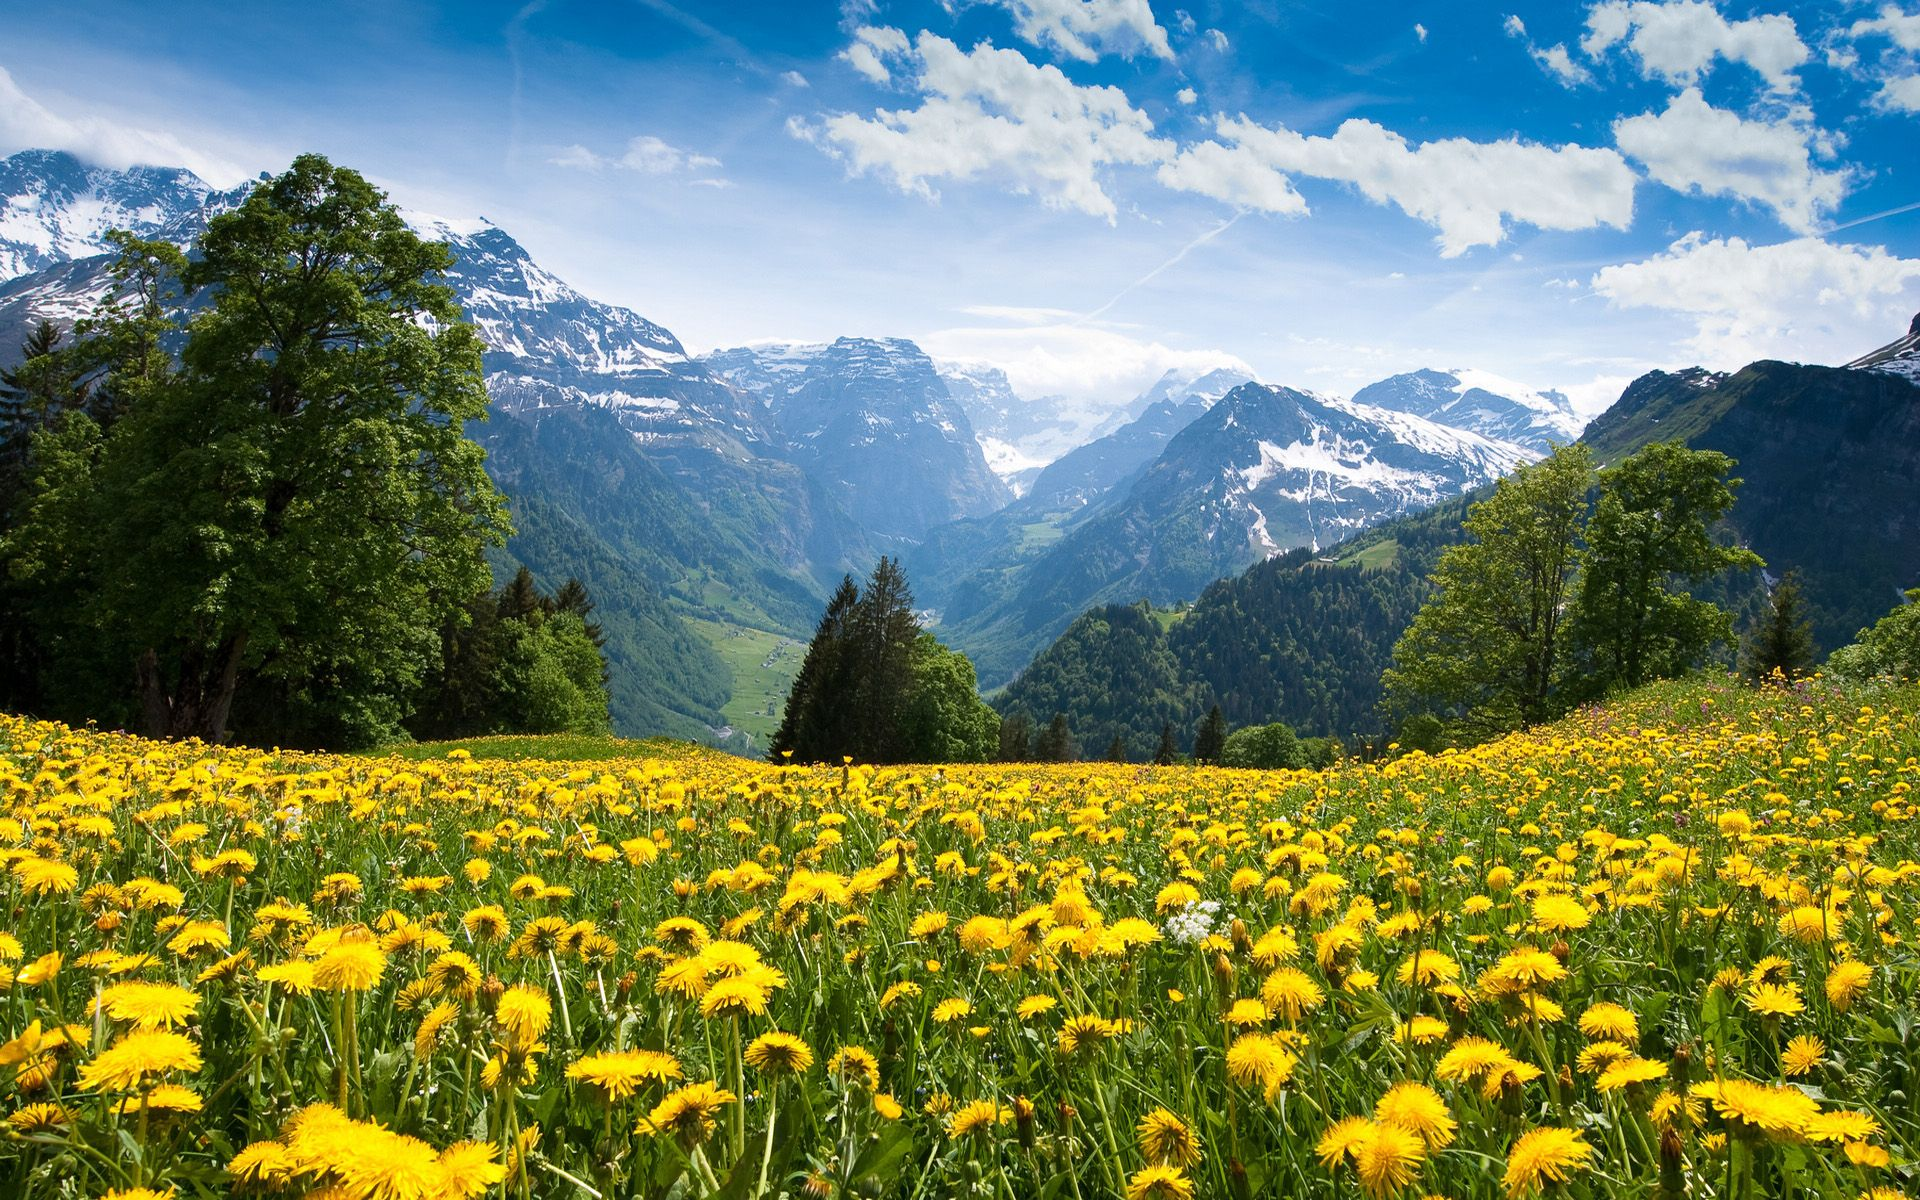 spring natural scenery hd - photo #8